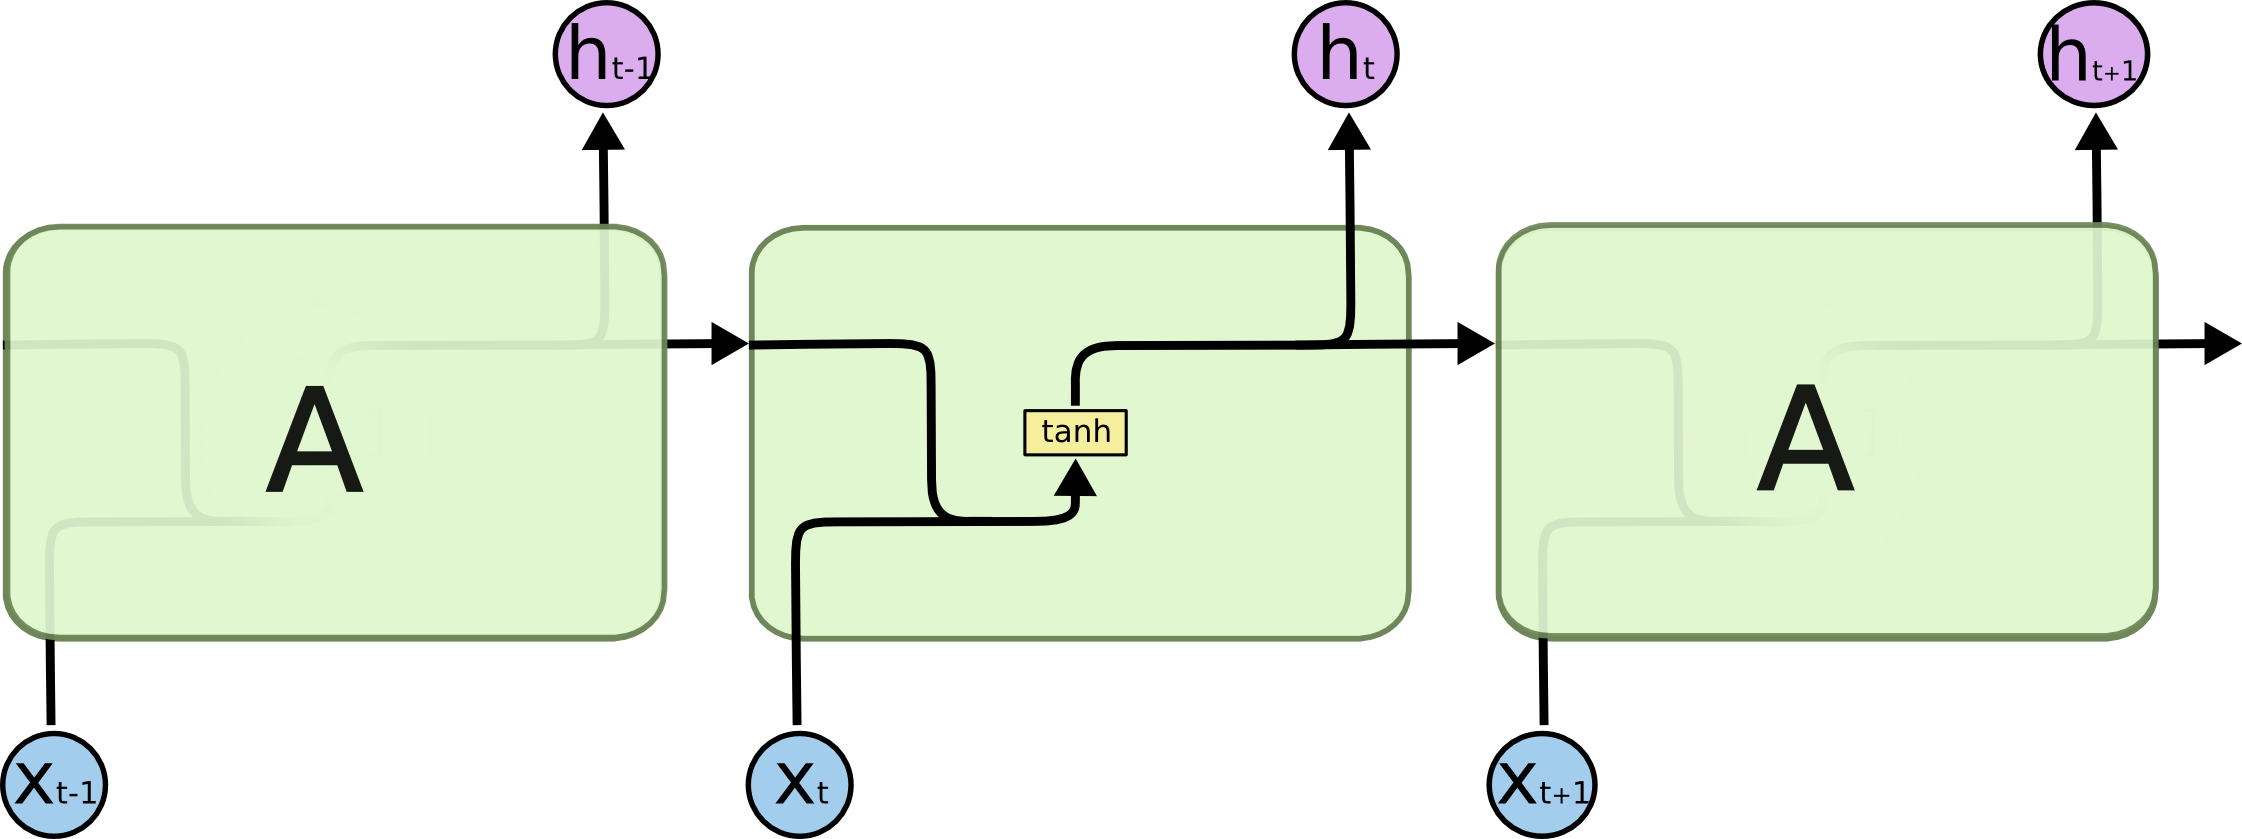 A basic recurrent neural network